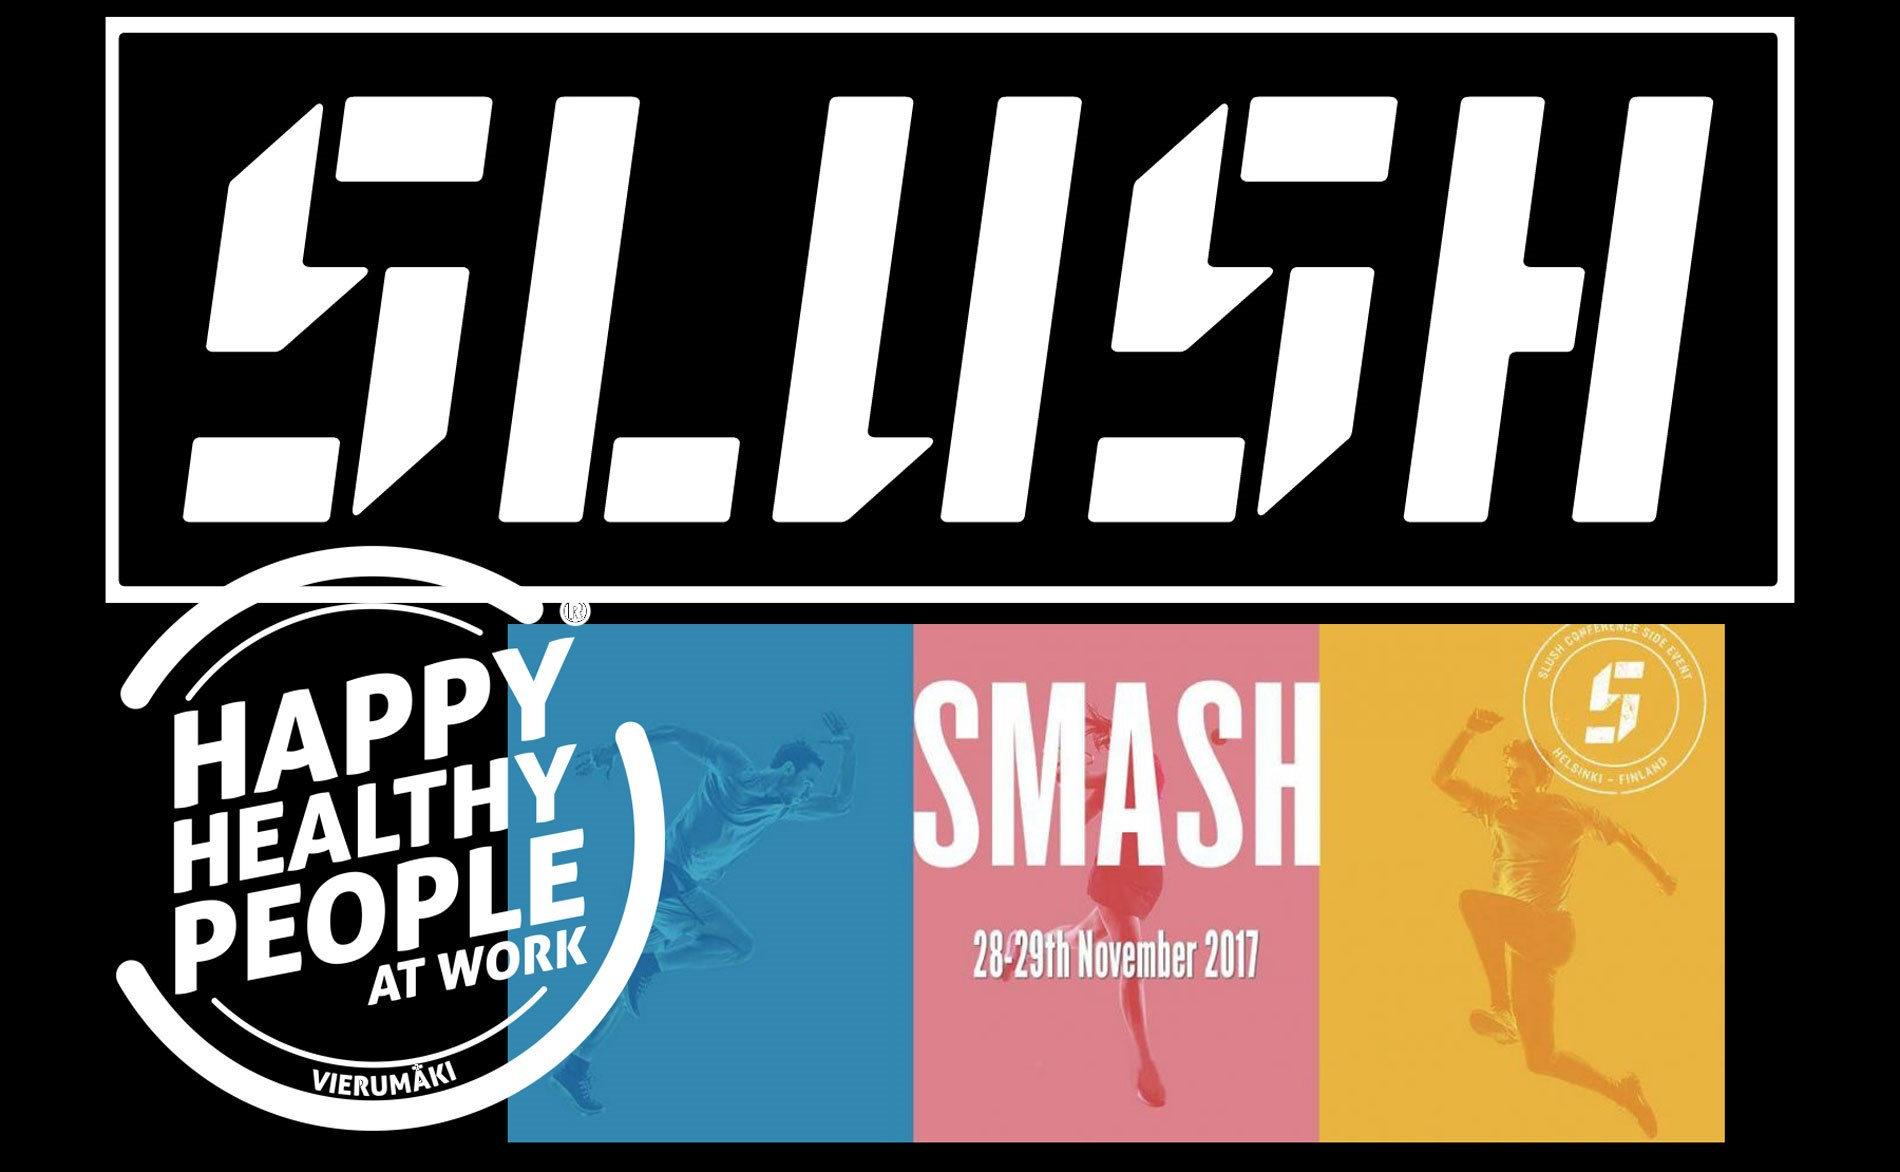 Happy Healthy People goes Slush and Smash!